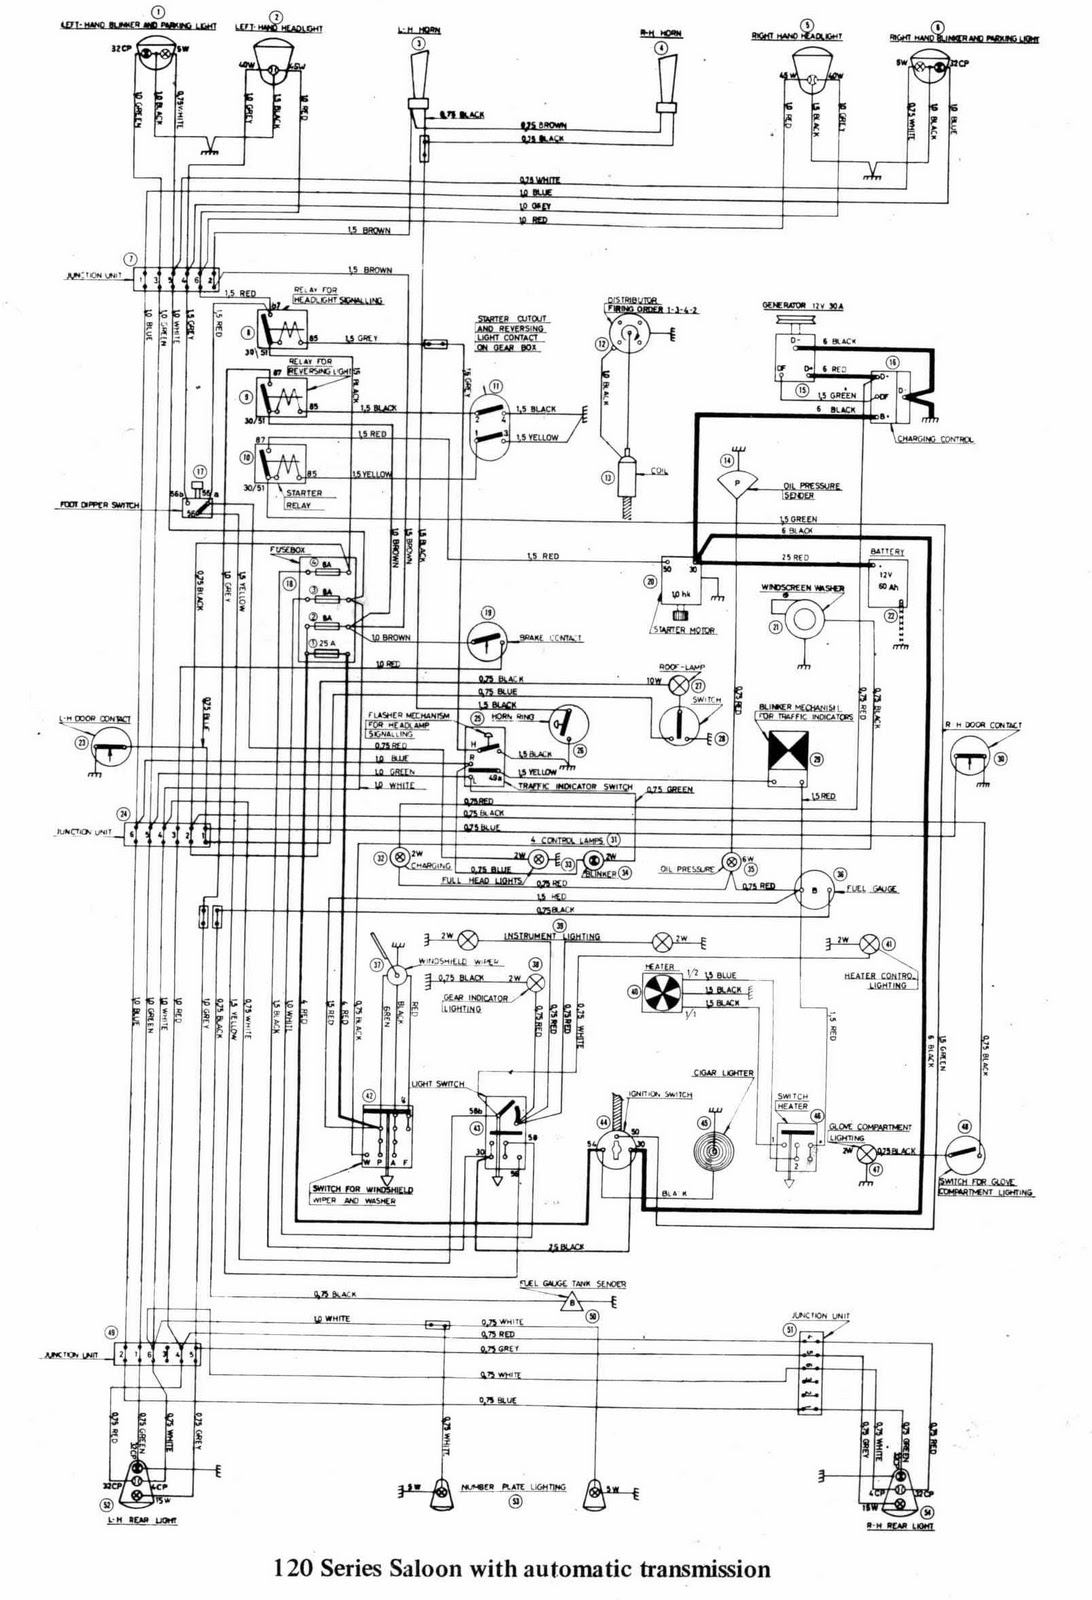 1998 Volvo Truck Wiring Diagram Data 1993 Chevy Ignition 850 Abs Schematics 1980